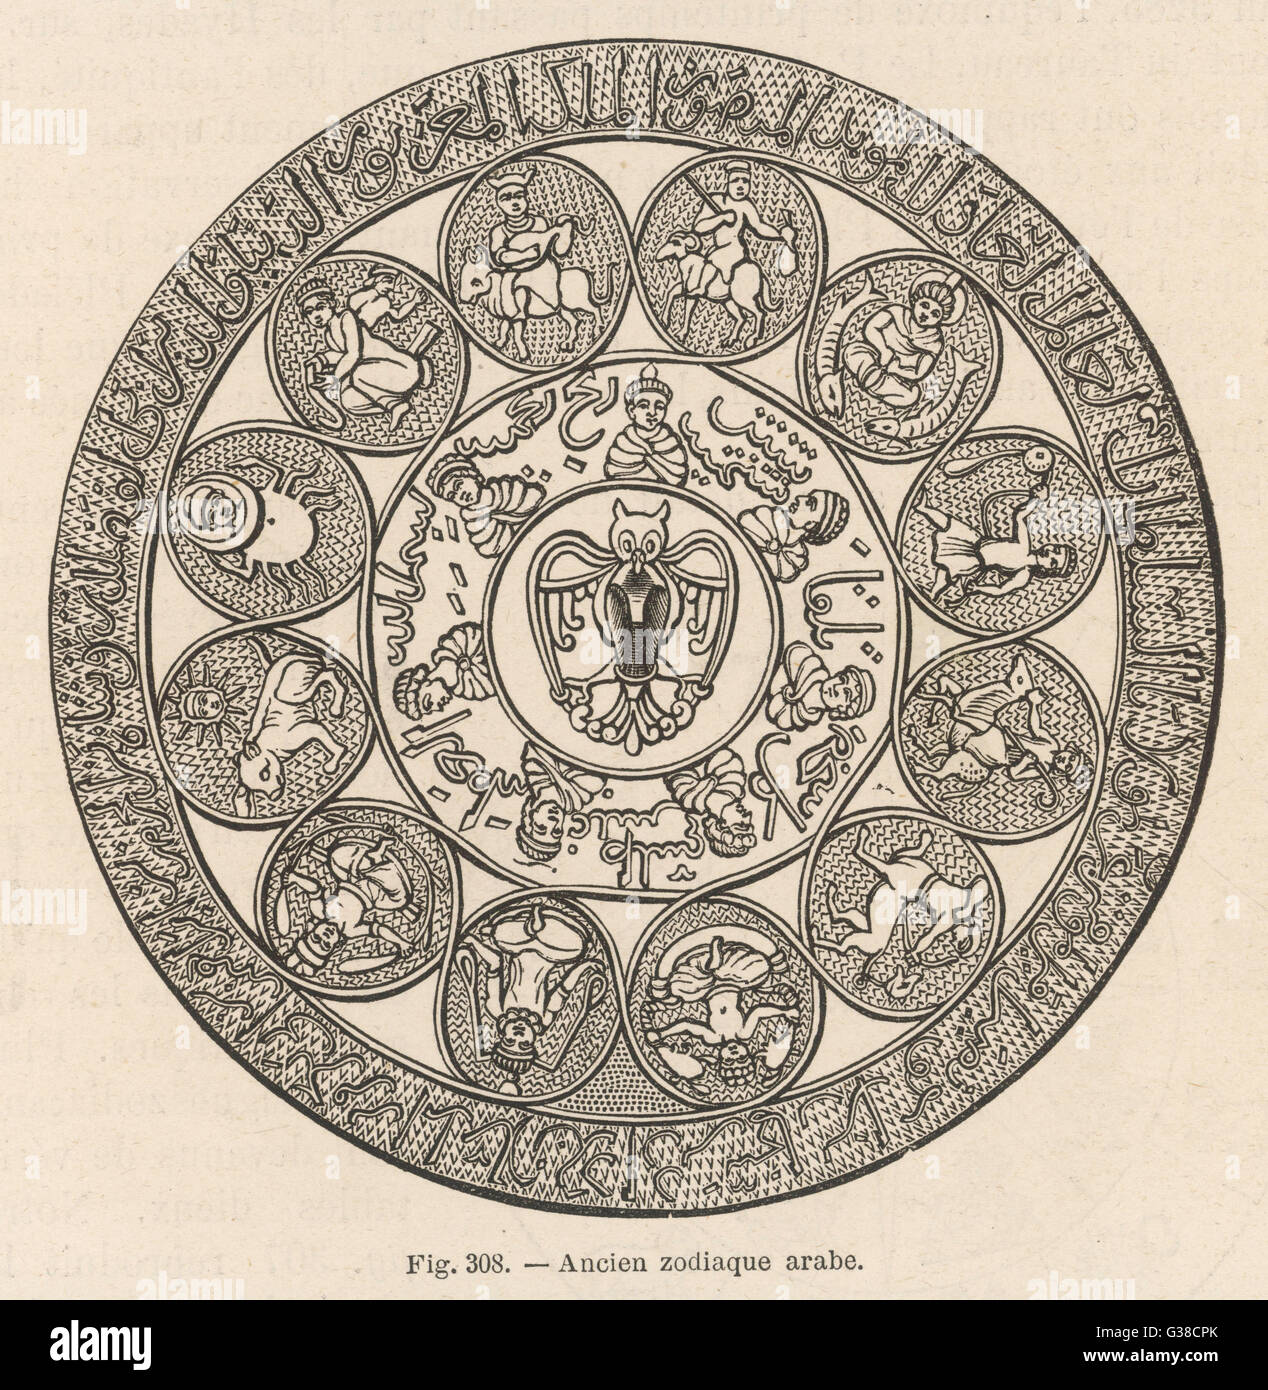 Ancient Arab zodiac - Stock Image